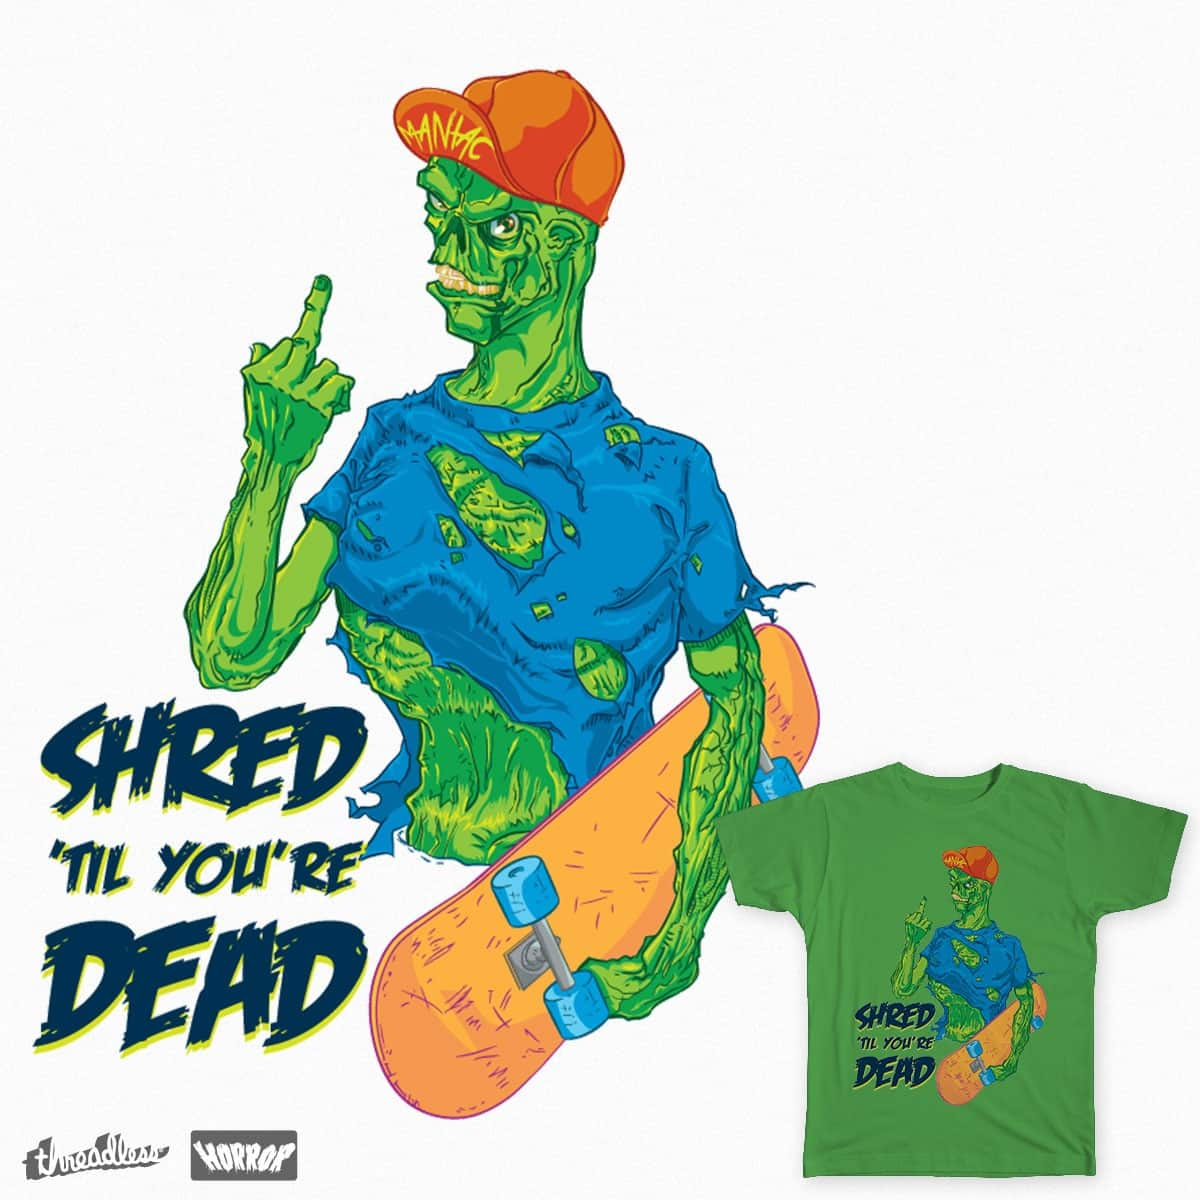 Shred 'Til You're Dead by dustin.mcdavid on Threadless